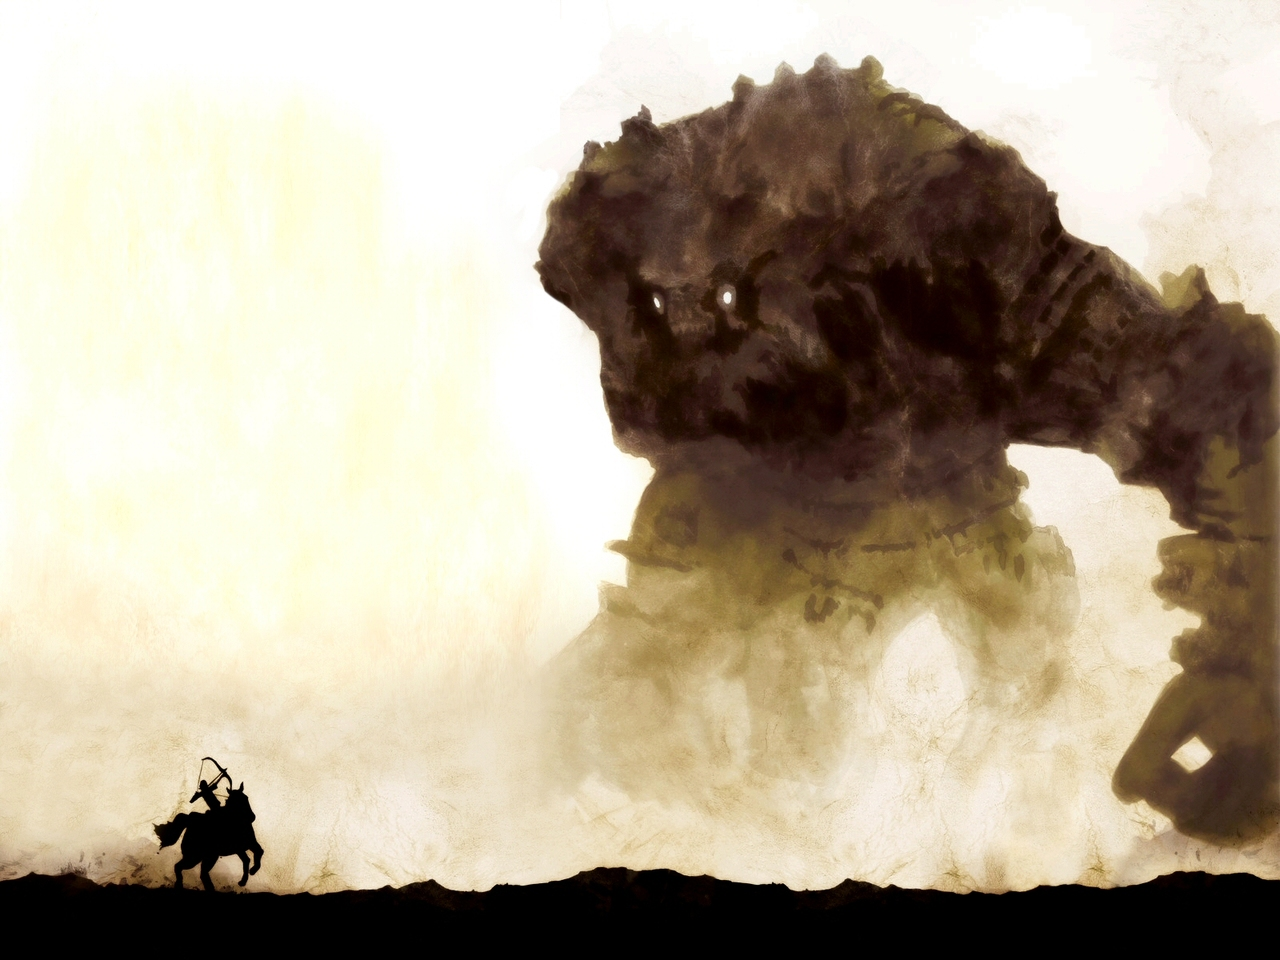 001: Shadow of the Colossus Pt. 1